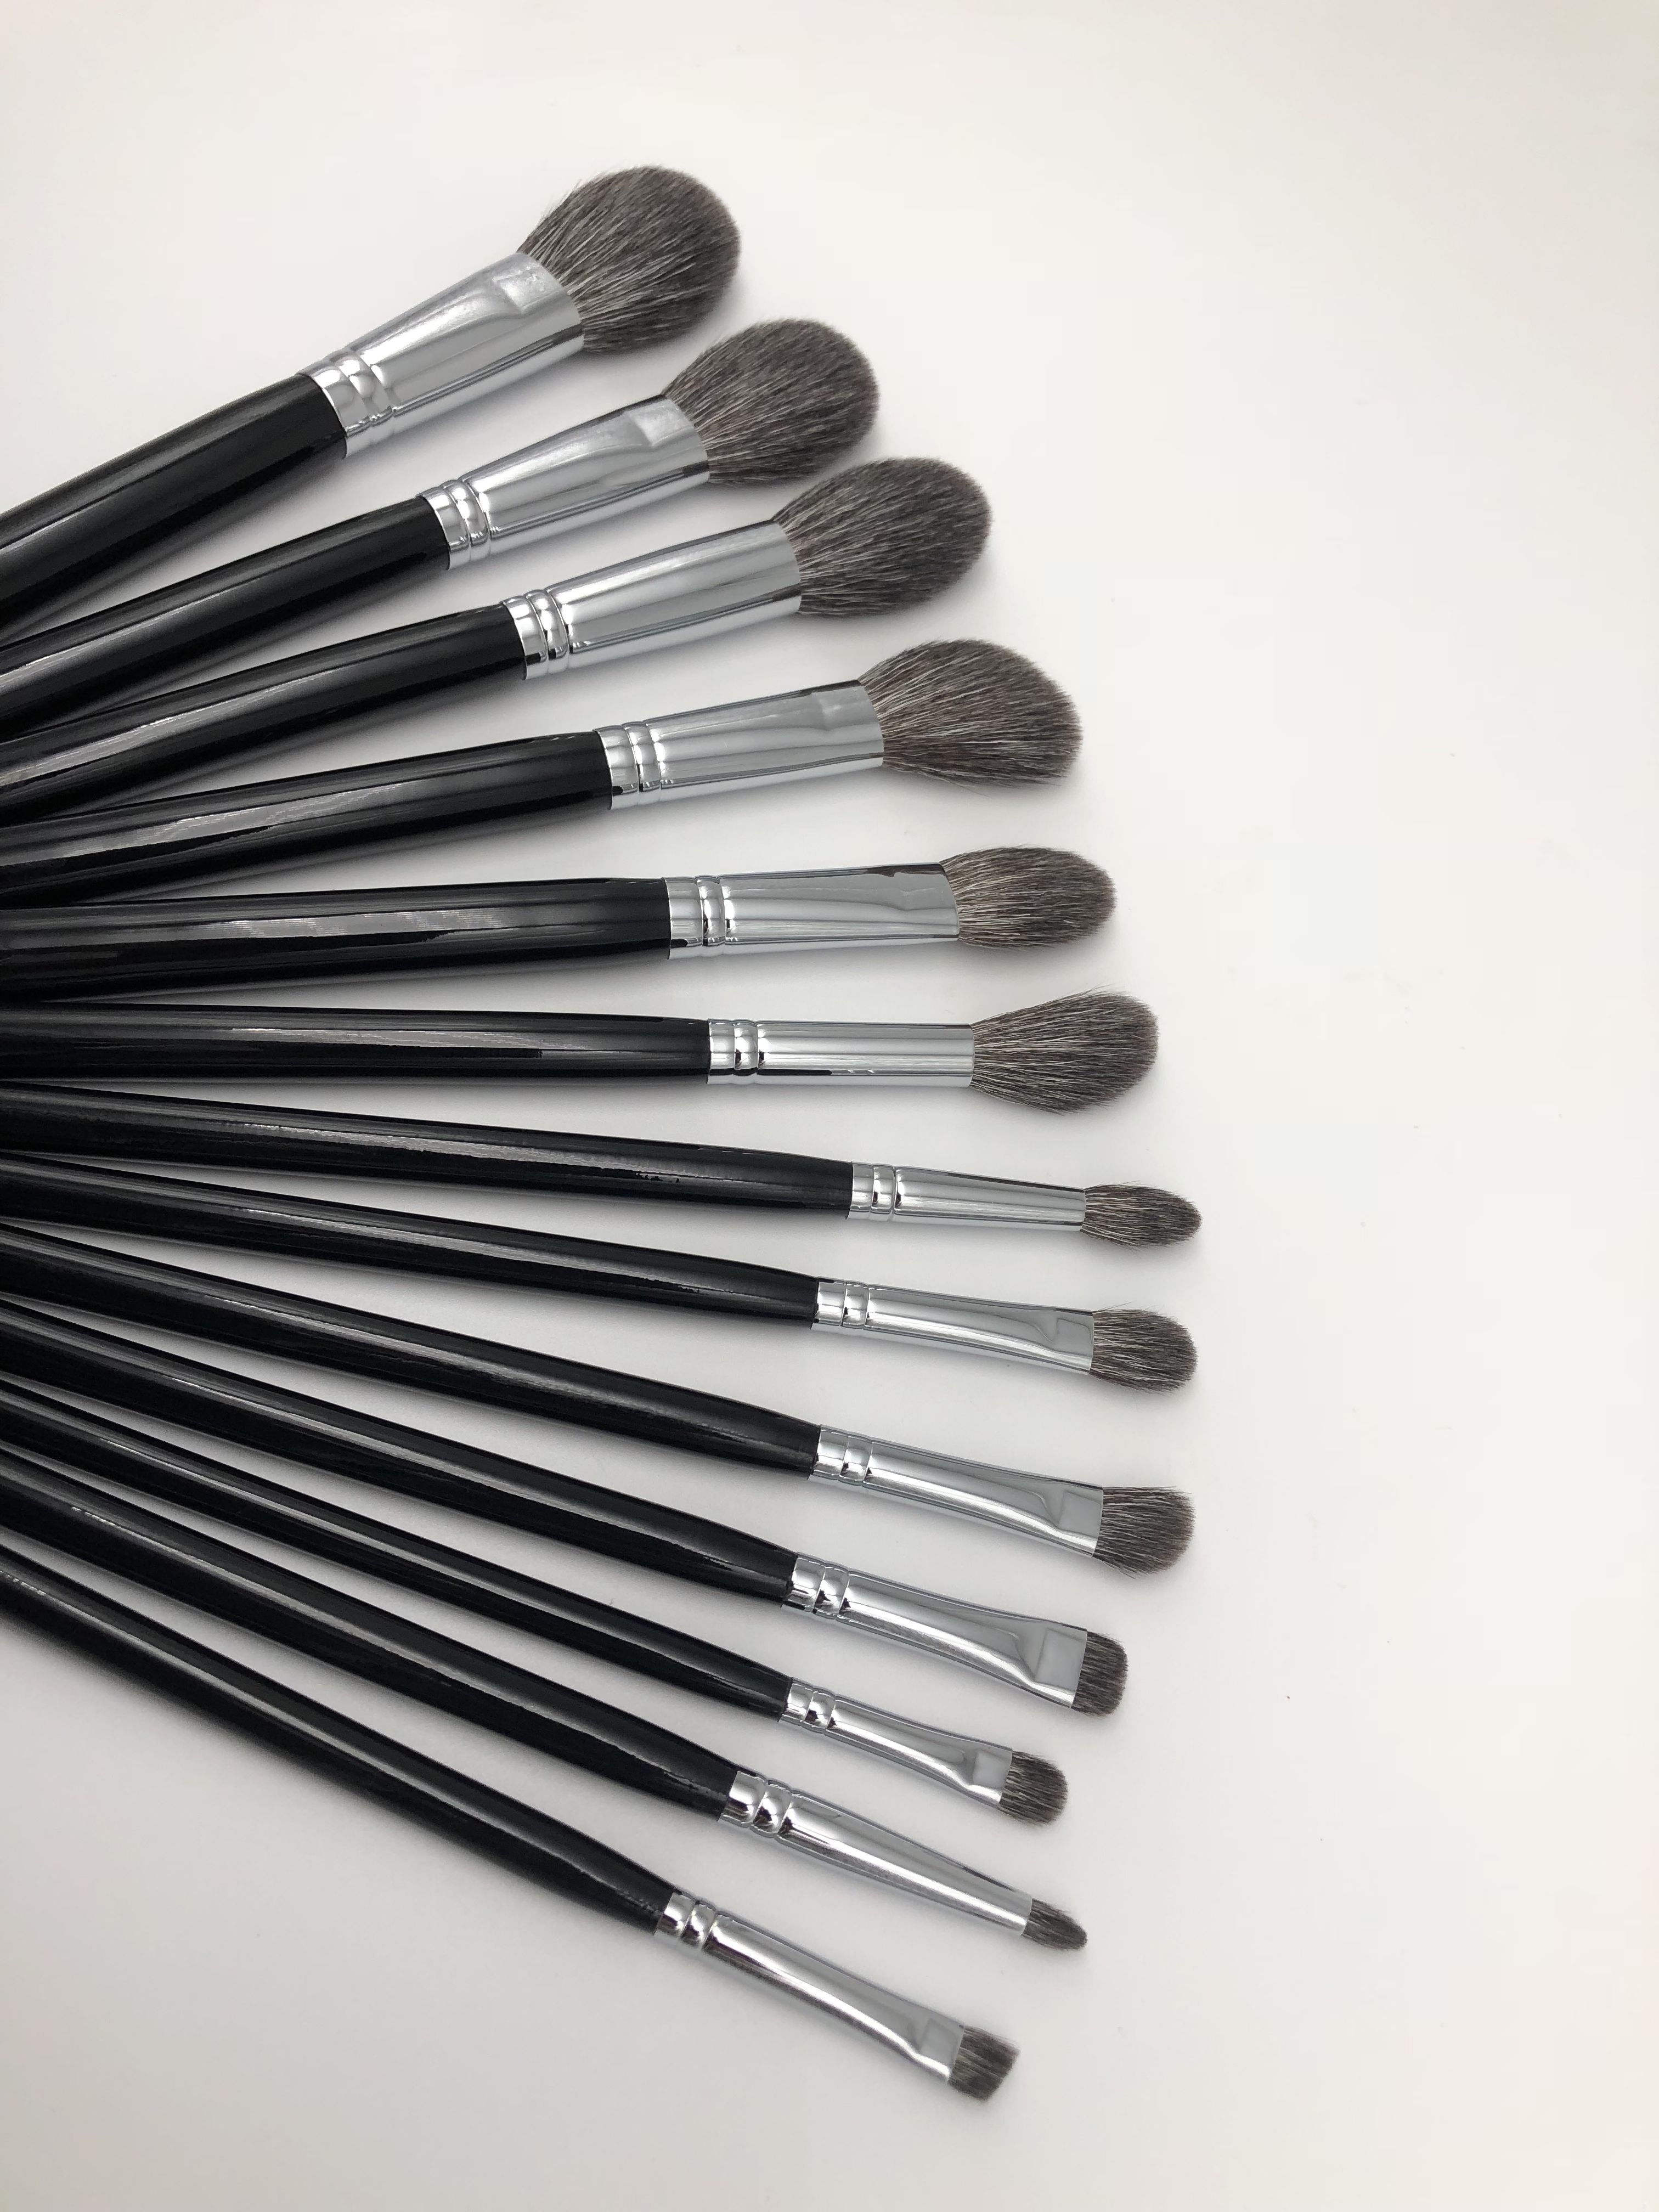 Vonira Beauty Makeup Brushes Review Our private